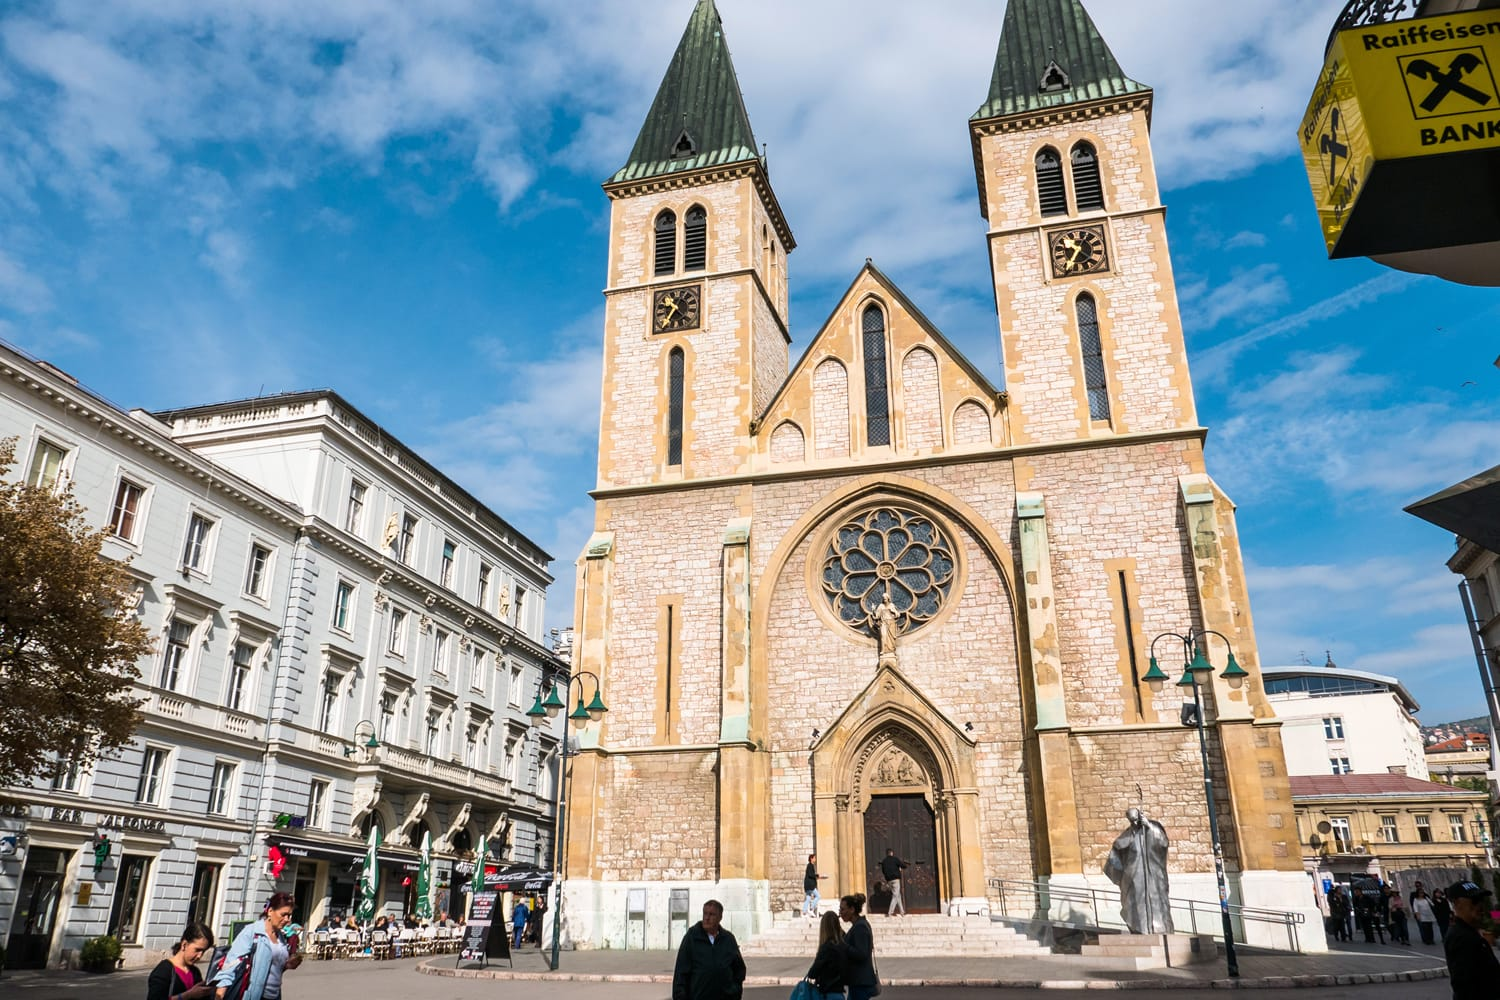 The Cathedral of Jesus' Sacred Heart in Sarajevo, Bosnia and Herzegovina, on a sunny day with people in the street